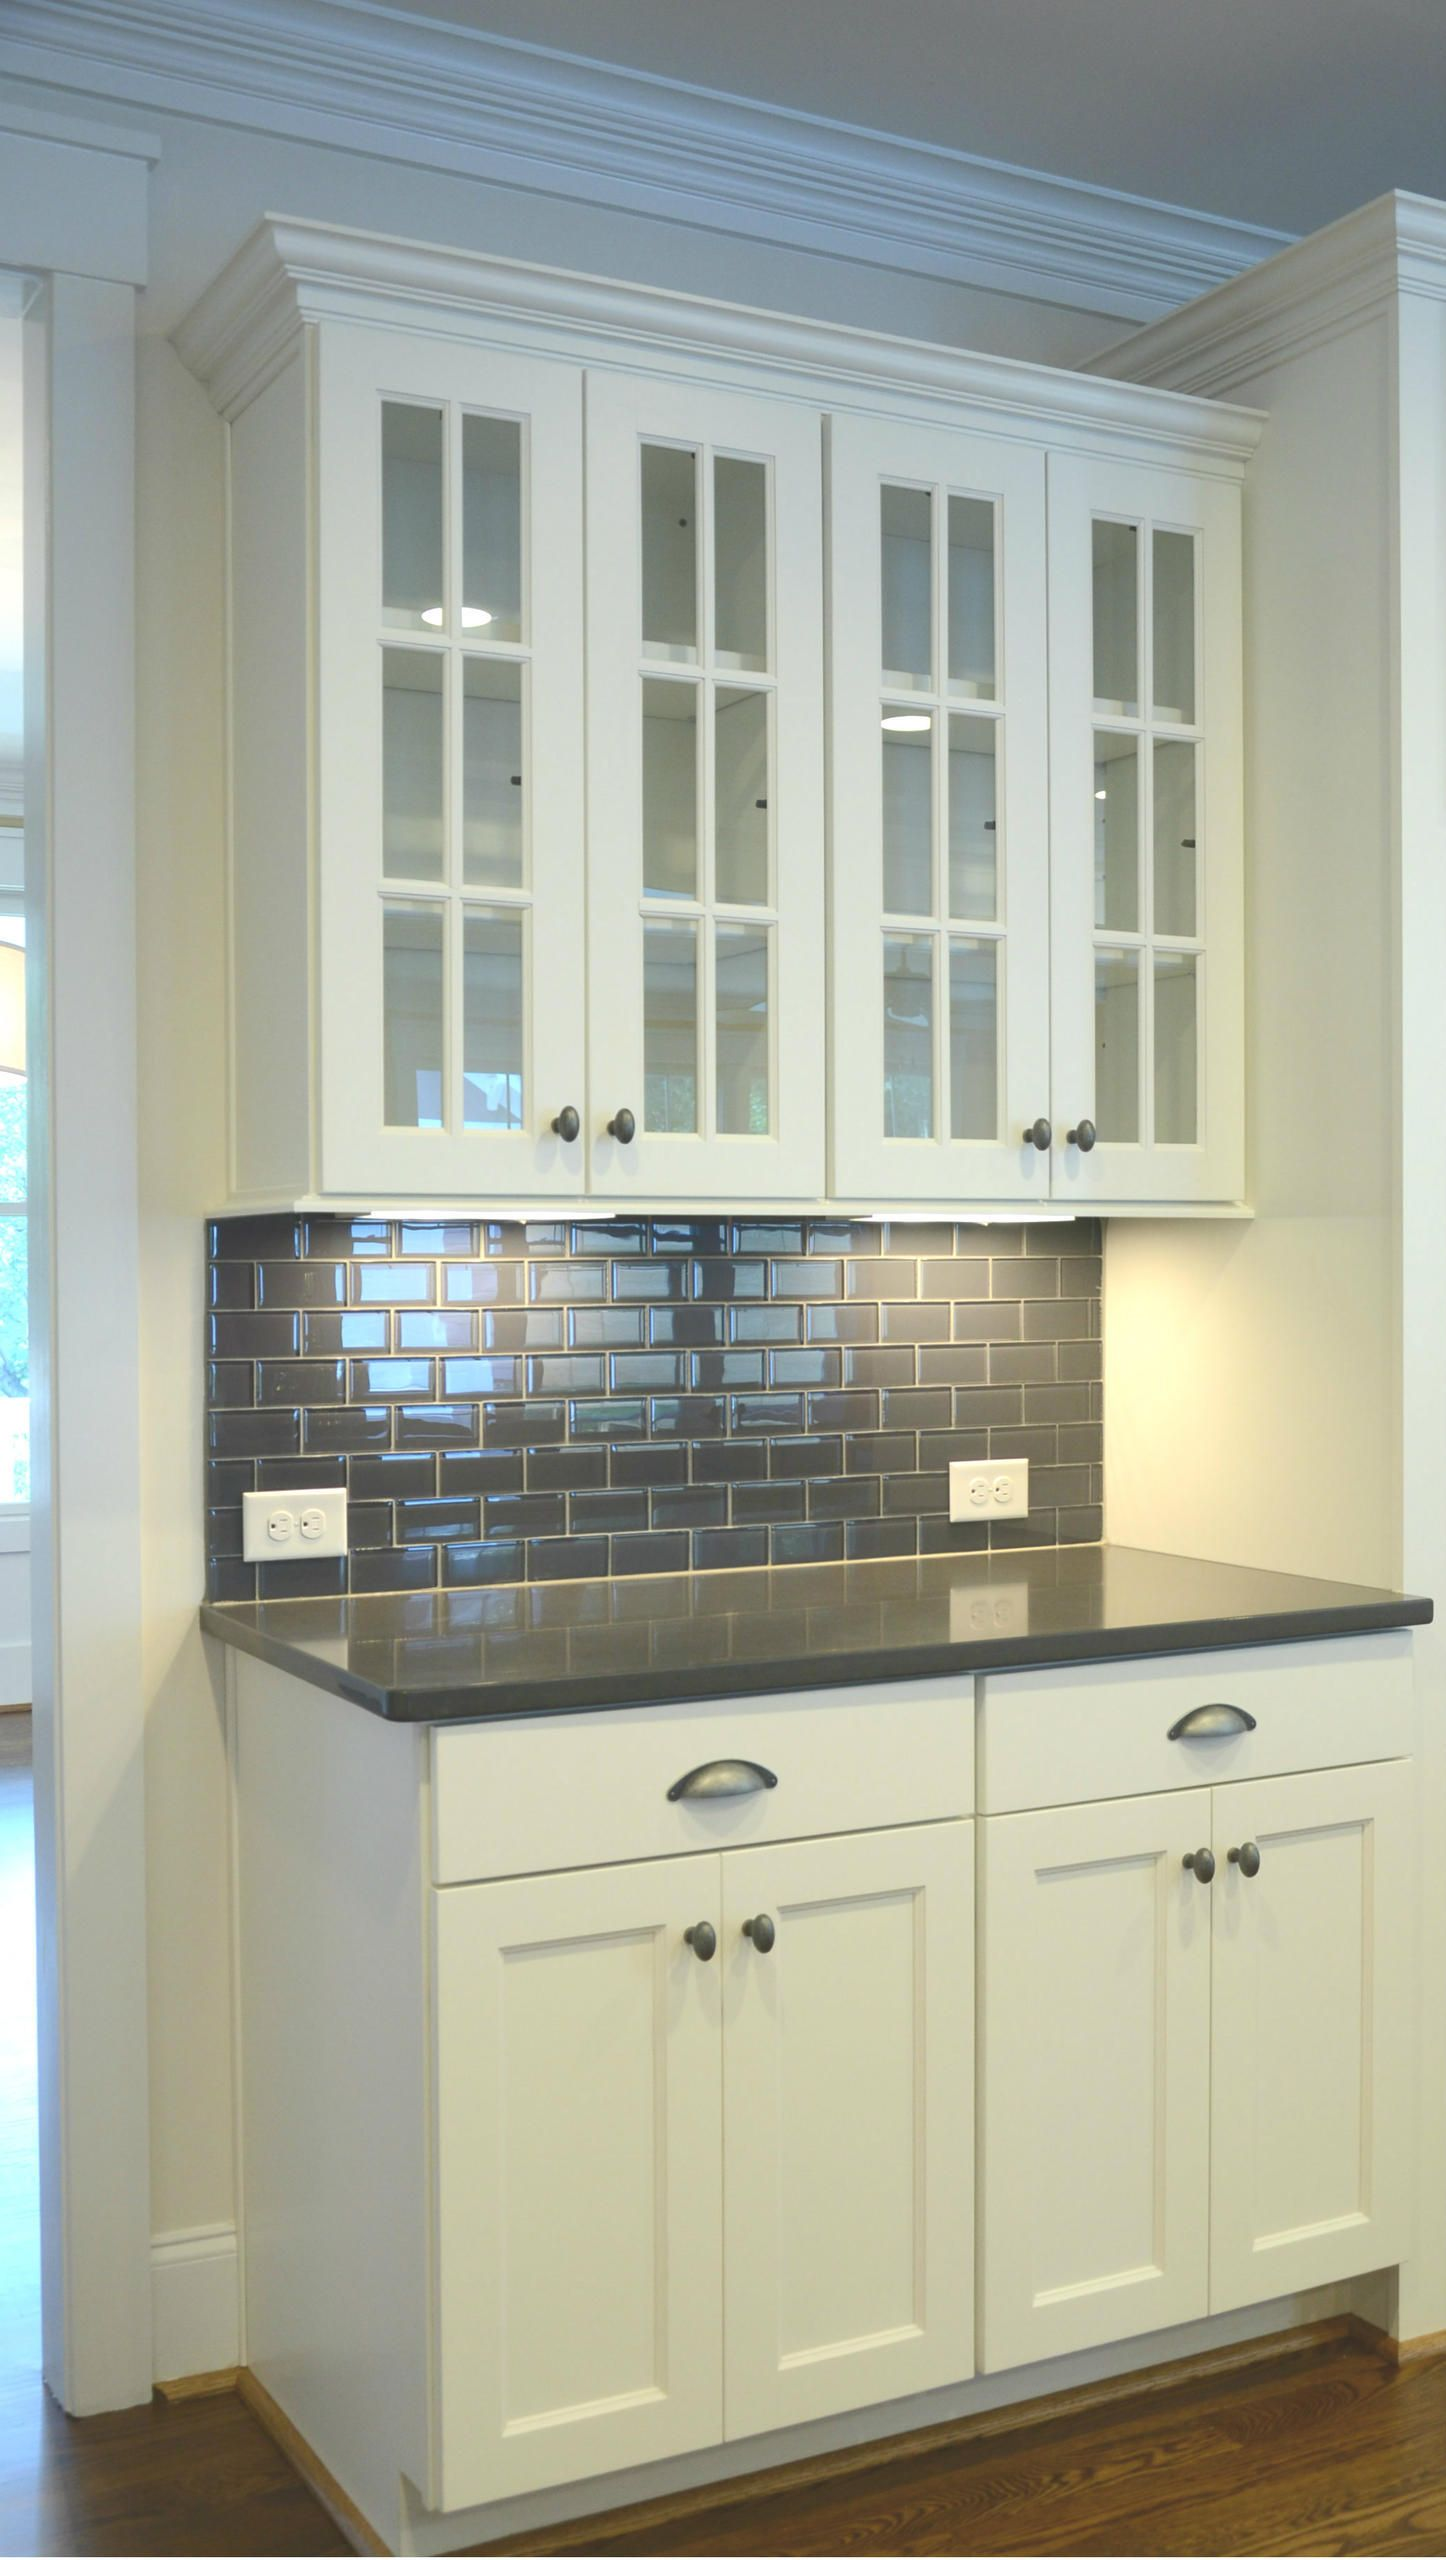 White Cabinets With Grey Quartz Countertops Kitchen Remodel Kitchen Design Outdoor Kitchen Countertops